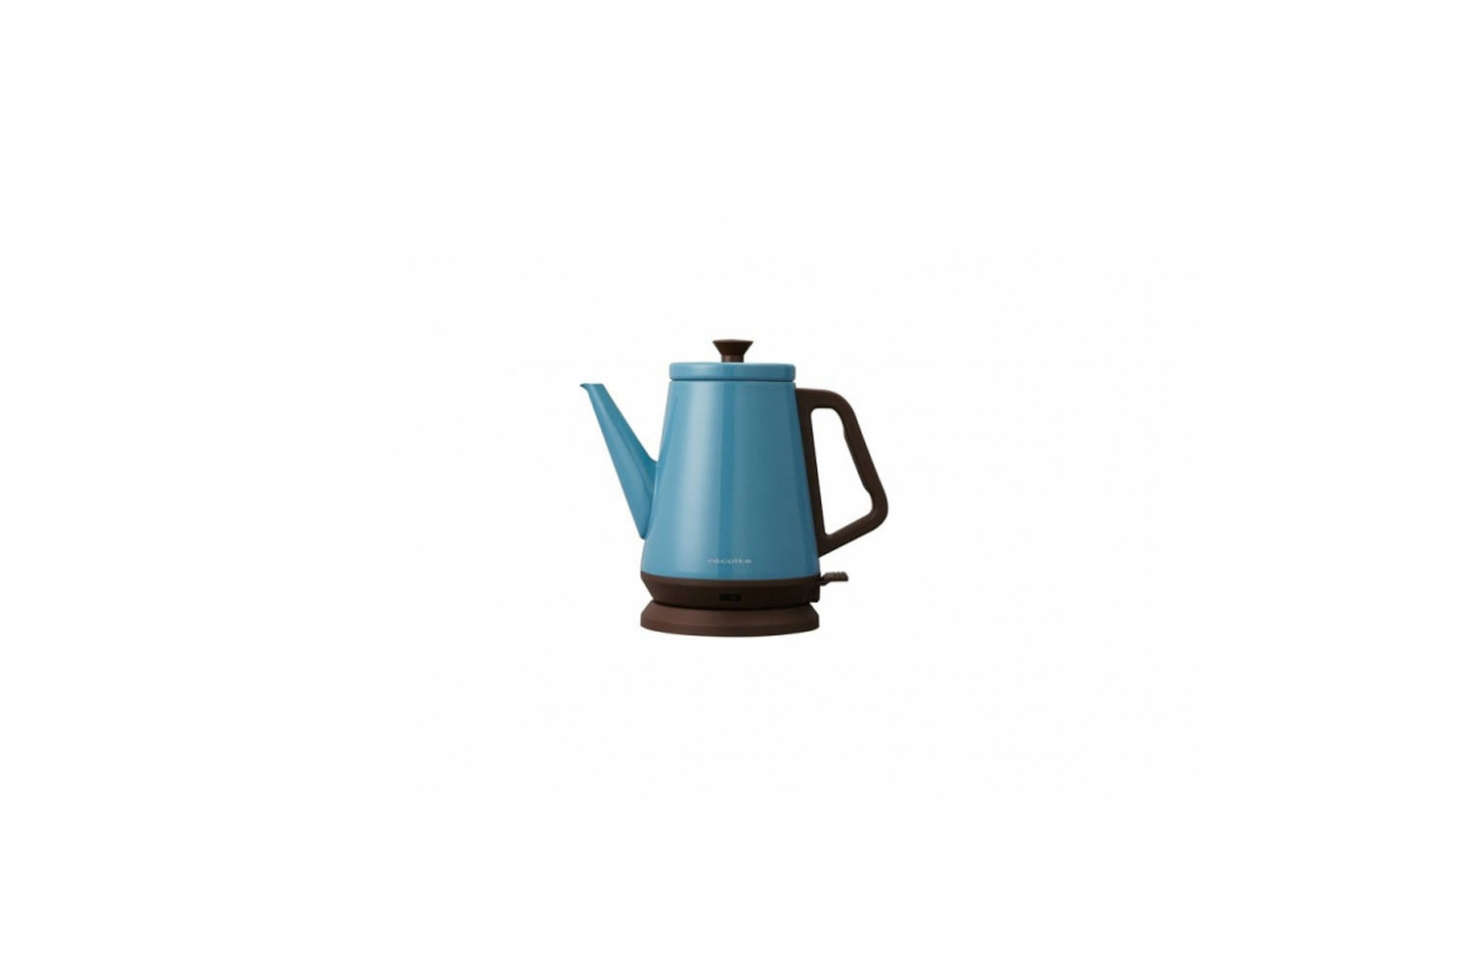 The Récolte Classic Libre Electric Kettle in blue is something Marcia and Durrell picked up on a trip to Hong Kong. You can find it on Amazon for $84.0